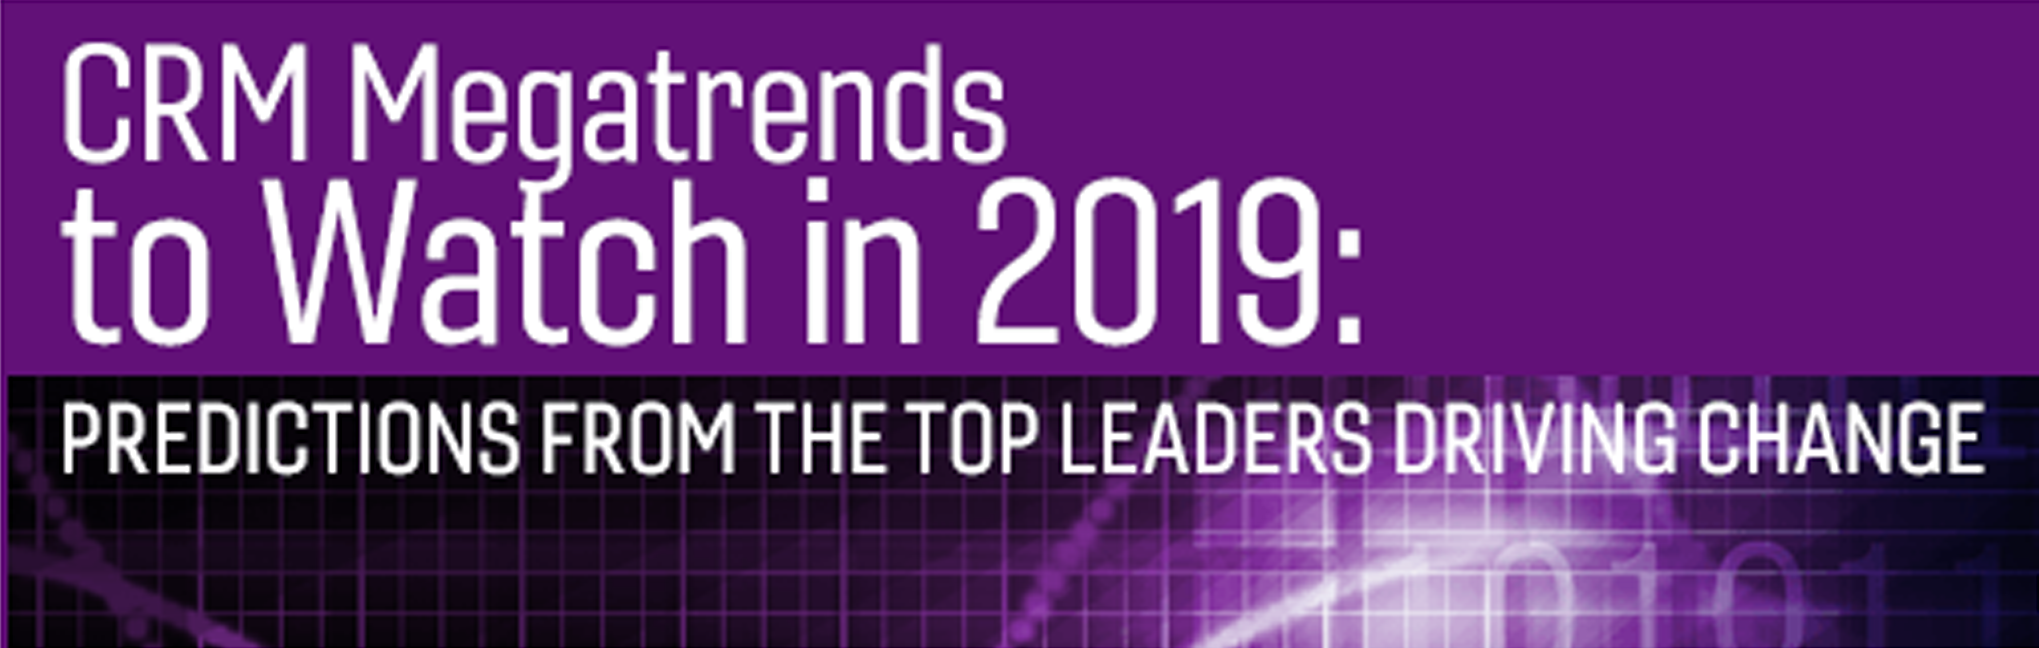 January 23, 2019 - Live Webinar with X2 Engine' David Buchanan - Hosted by CRM Magazine. Listen to leaders from X2Engine, eGain and NICE speak about 2019 CRM mega-trend.